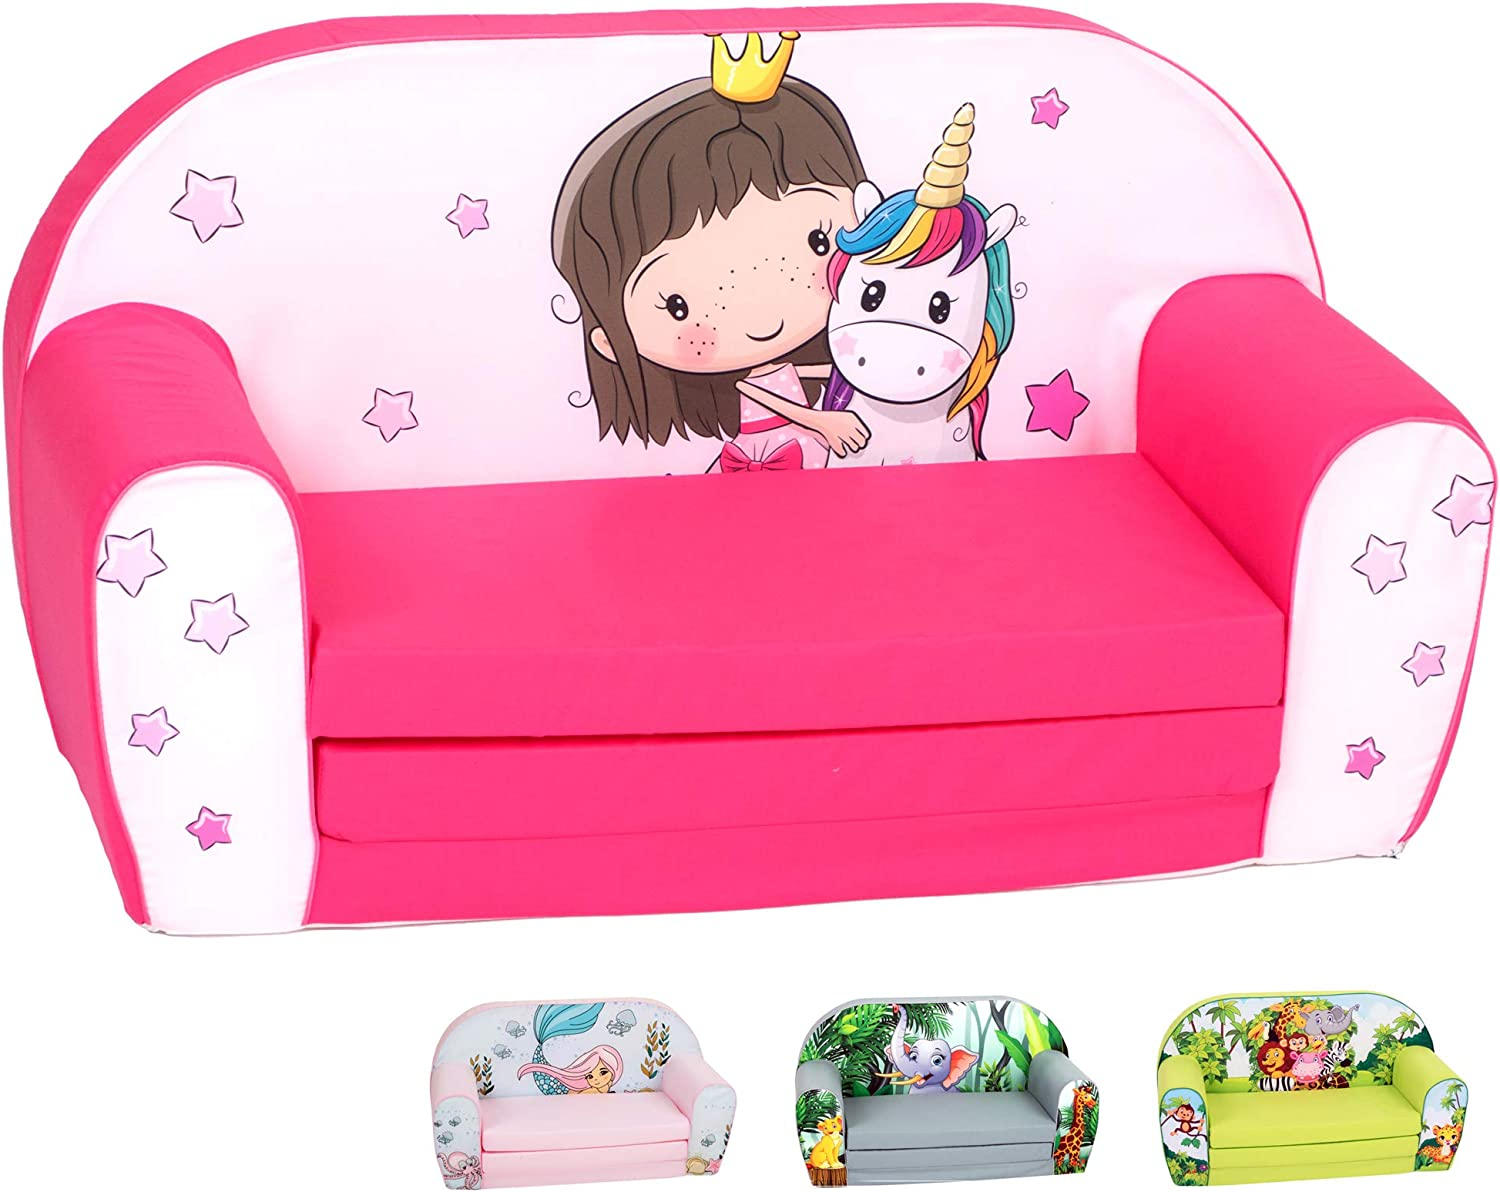 DELSIT Toddler Couch & Kids Sofa - European Made Children's 2 in 1 Flip Open Foam Double Sofa - Kids Folding Sofa, Kids Couch - Comfy fold Out Lounge (Princess Unicorn)